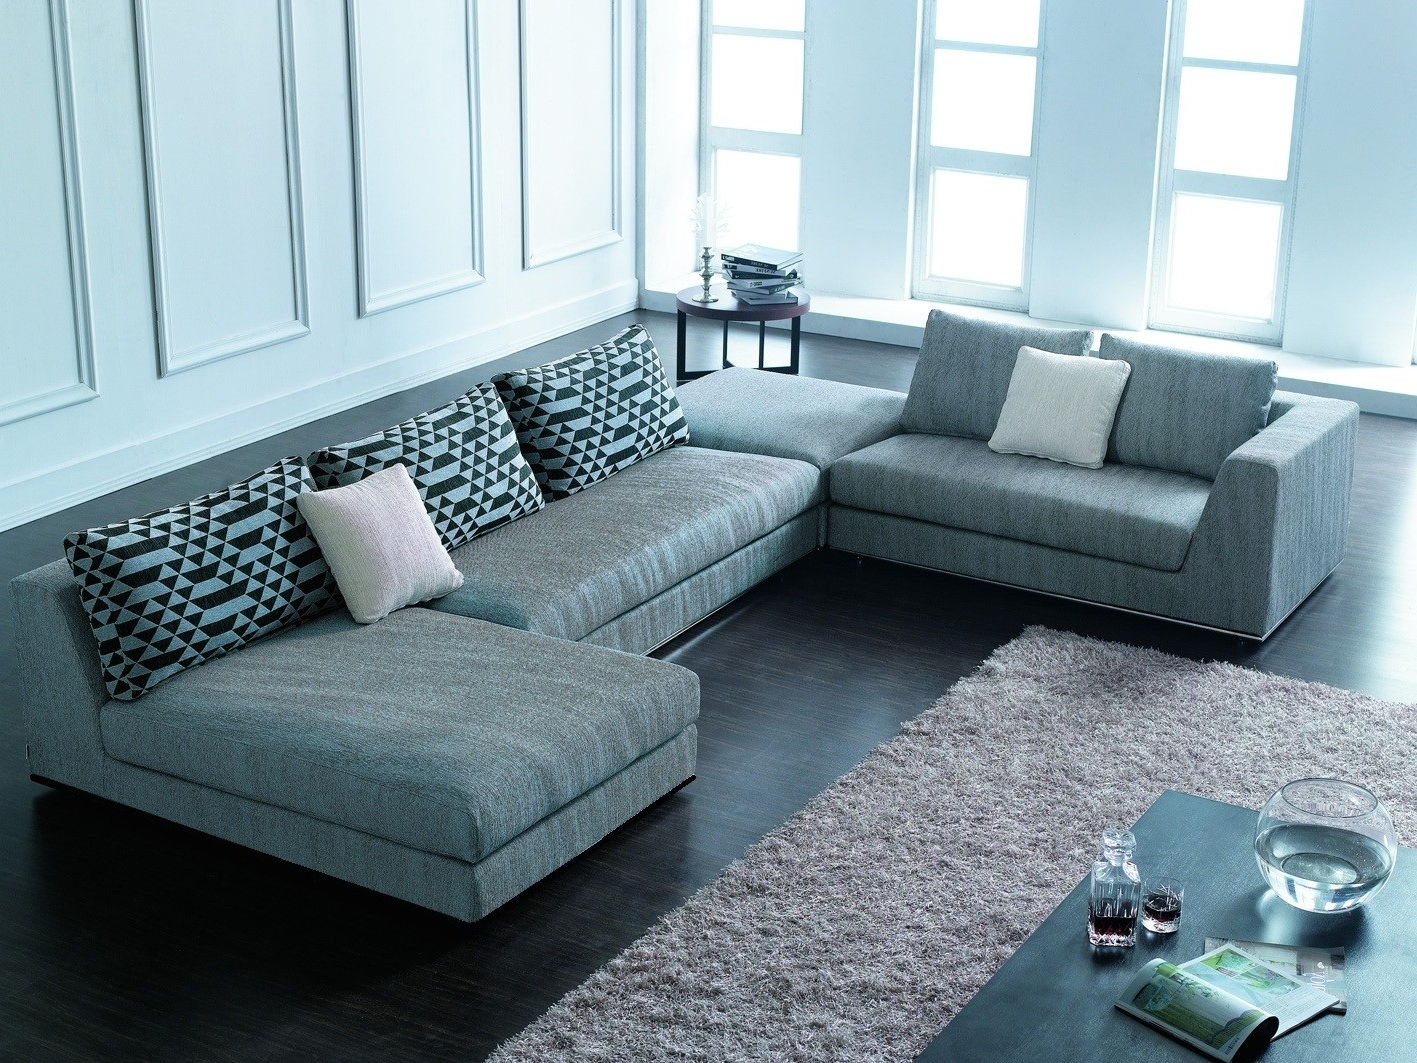 Most Comfortable Sectional Couches — Cabinets, Beds, Sofas And Throughout Most Recent Modern Sectional Sofas (View 7 of 15)